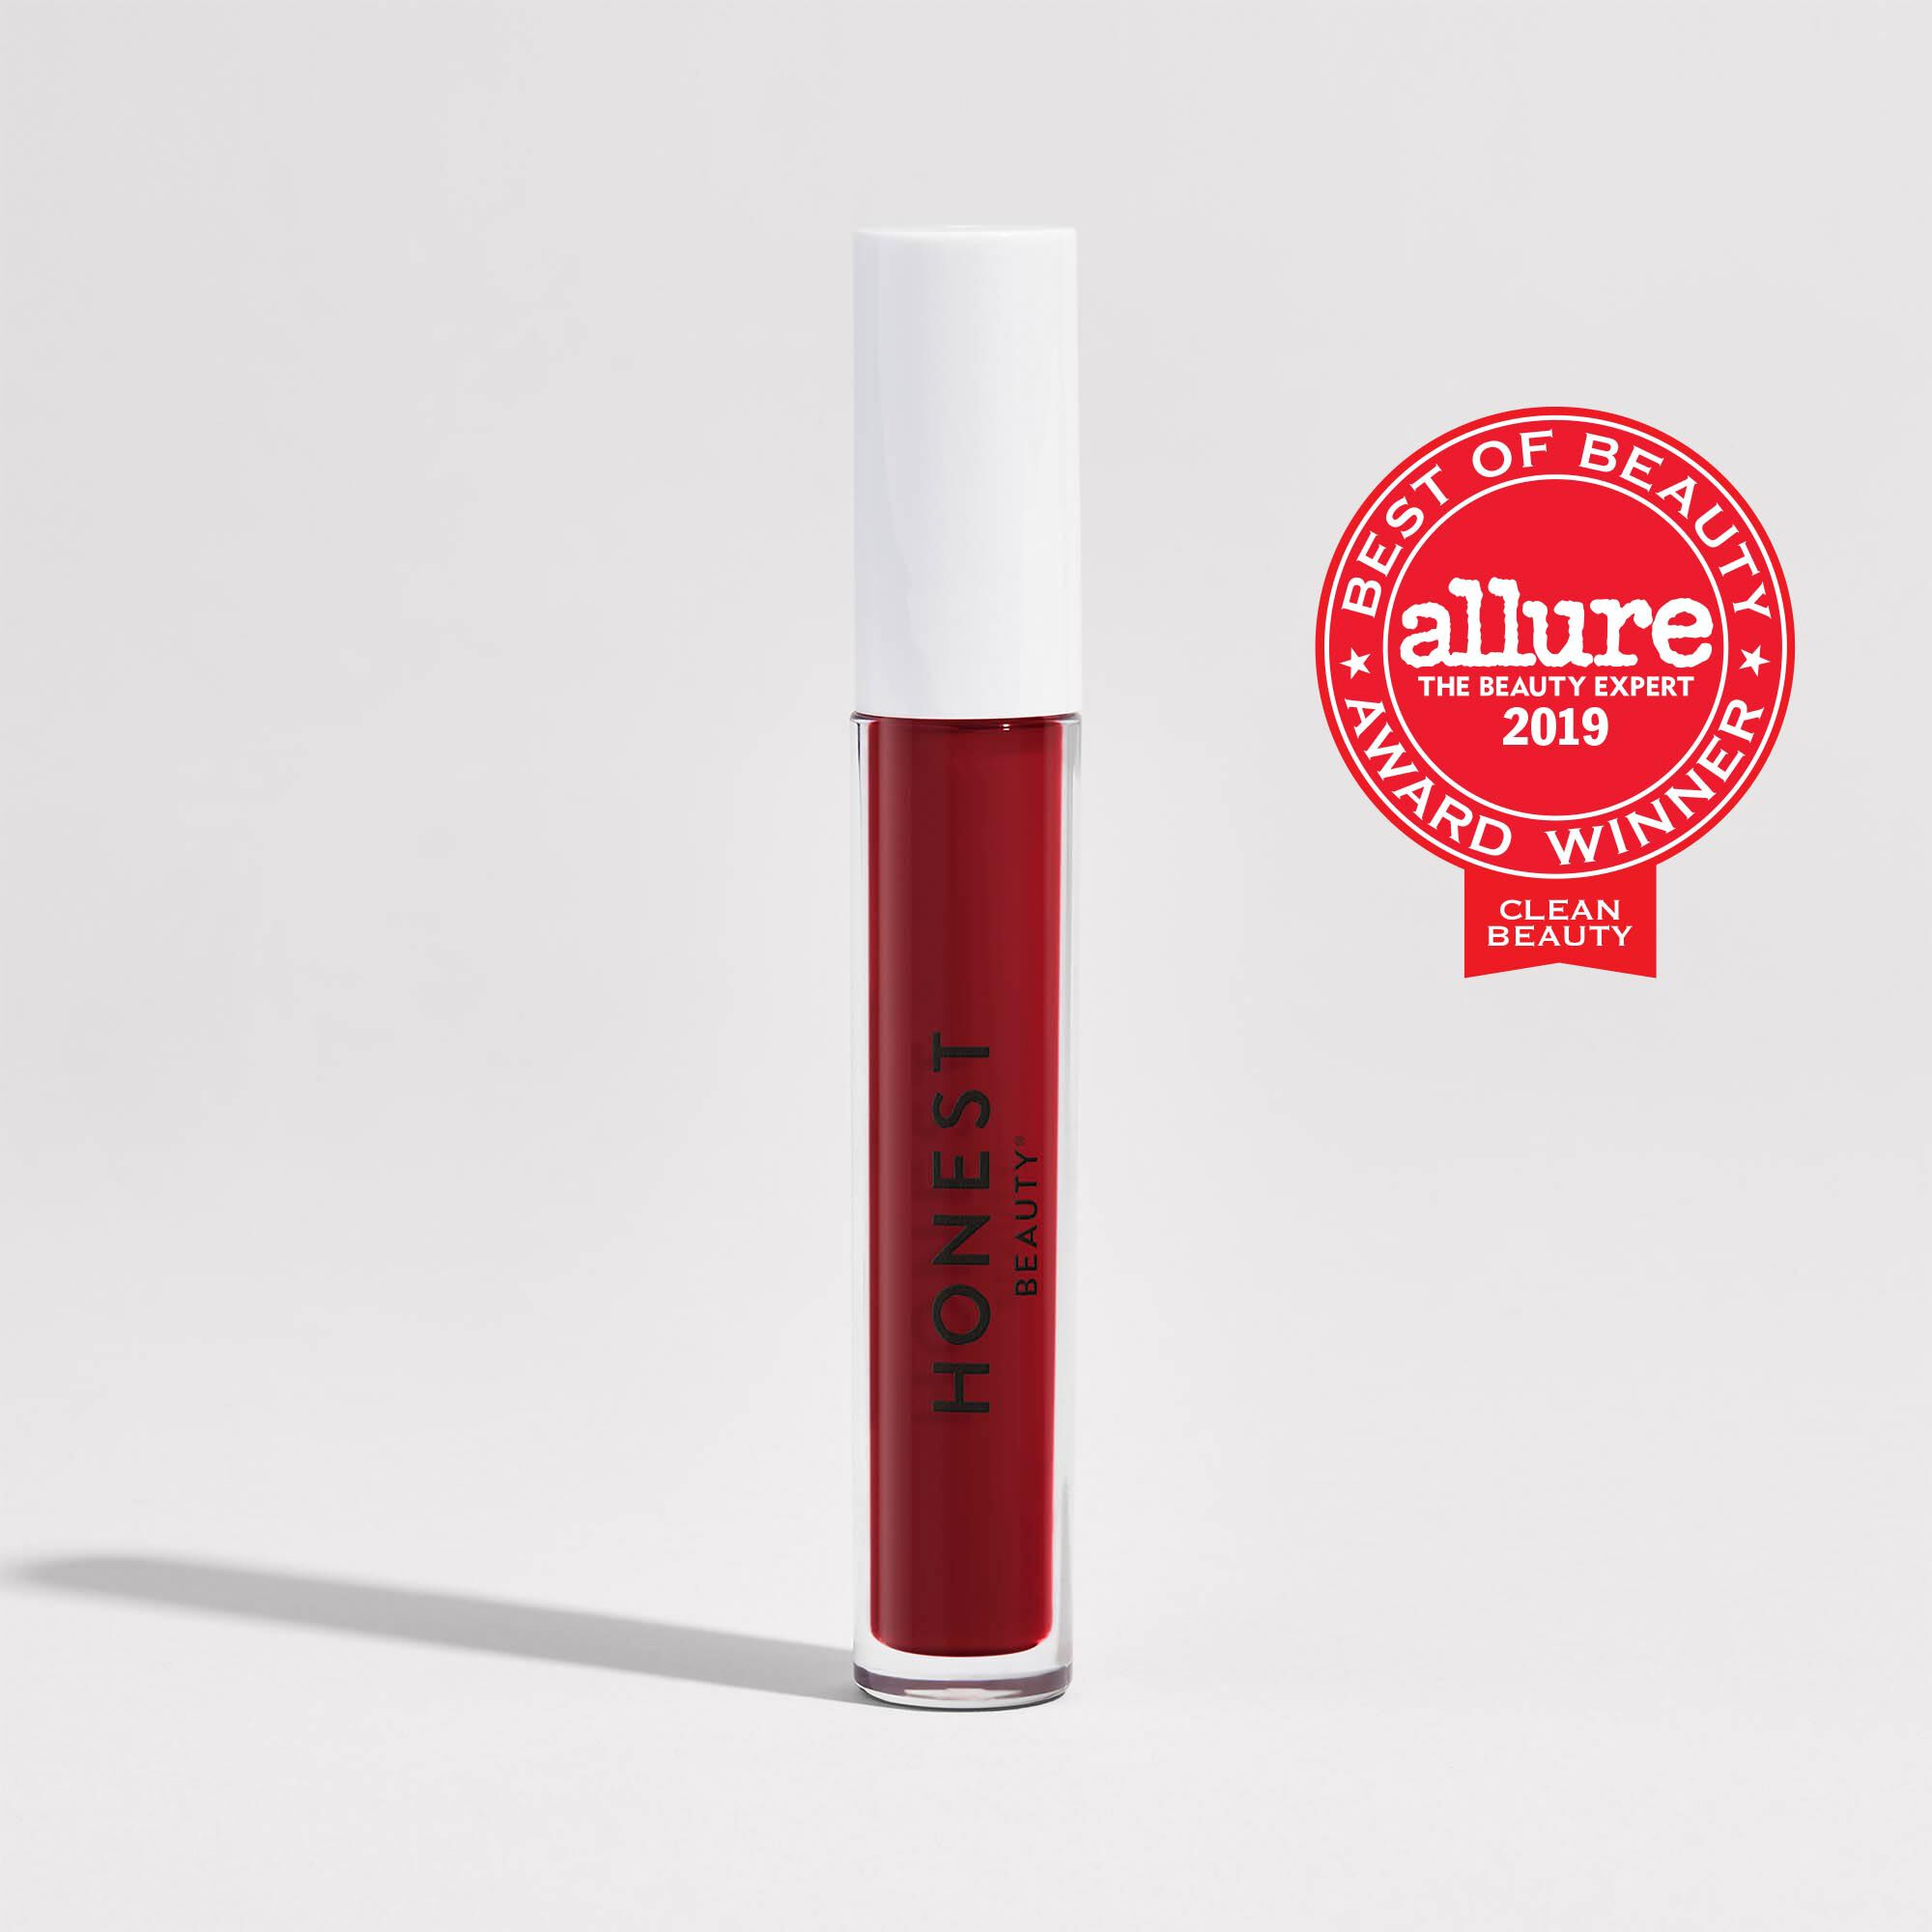 Love Shade, Allure Best of Beauty Award Winner